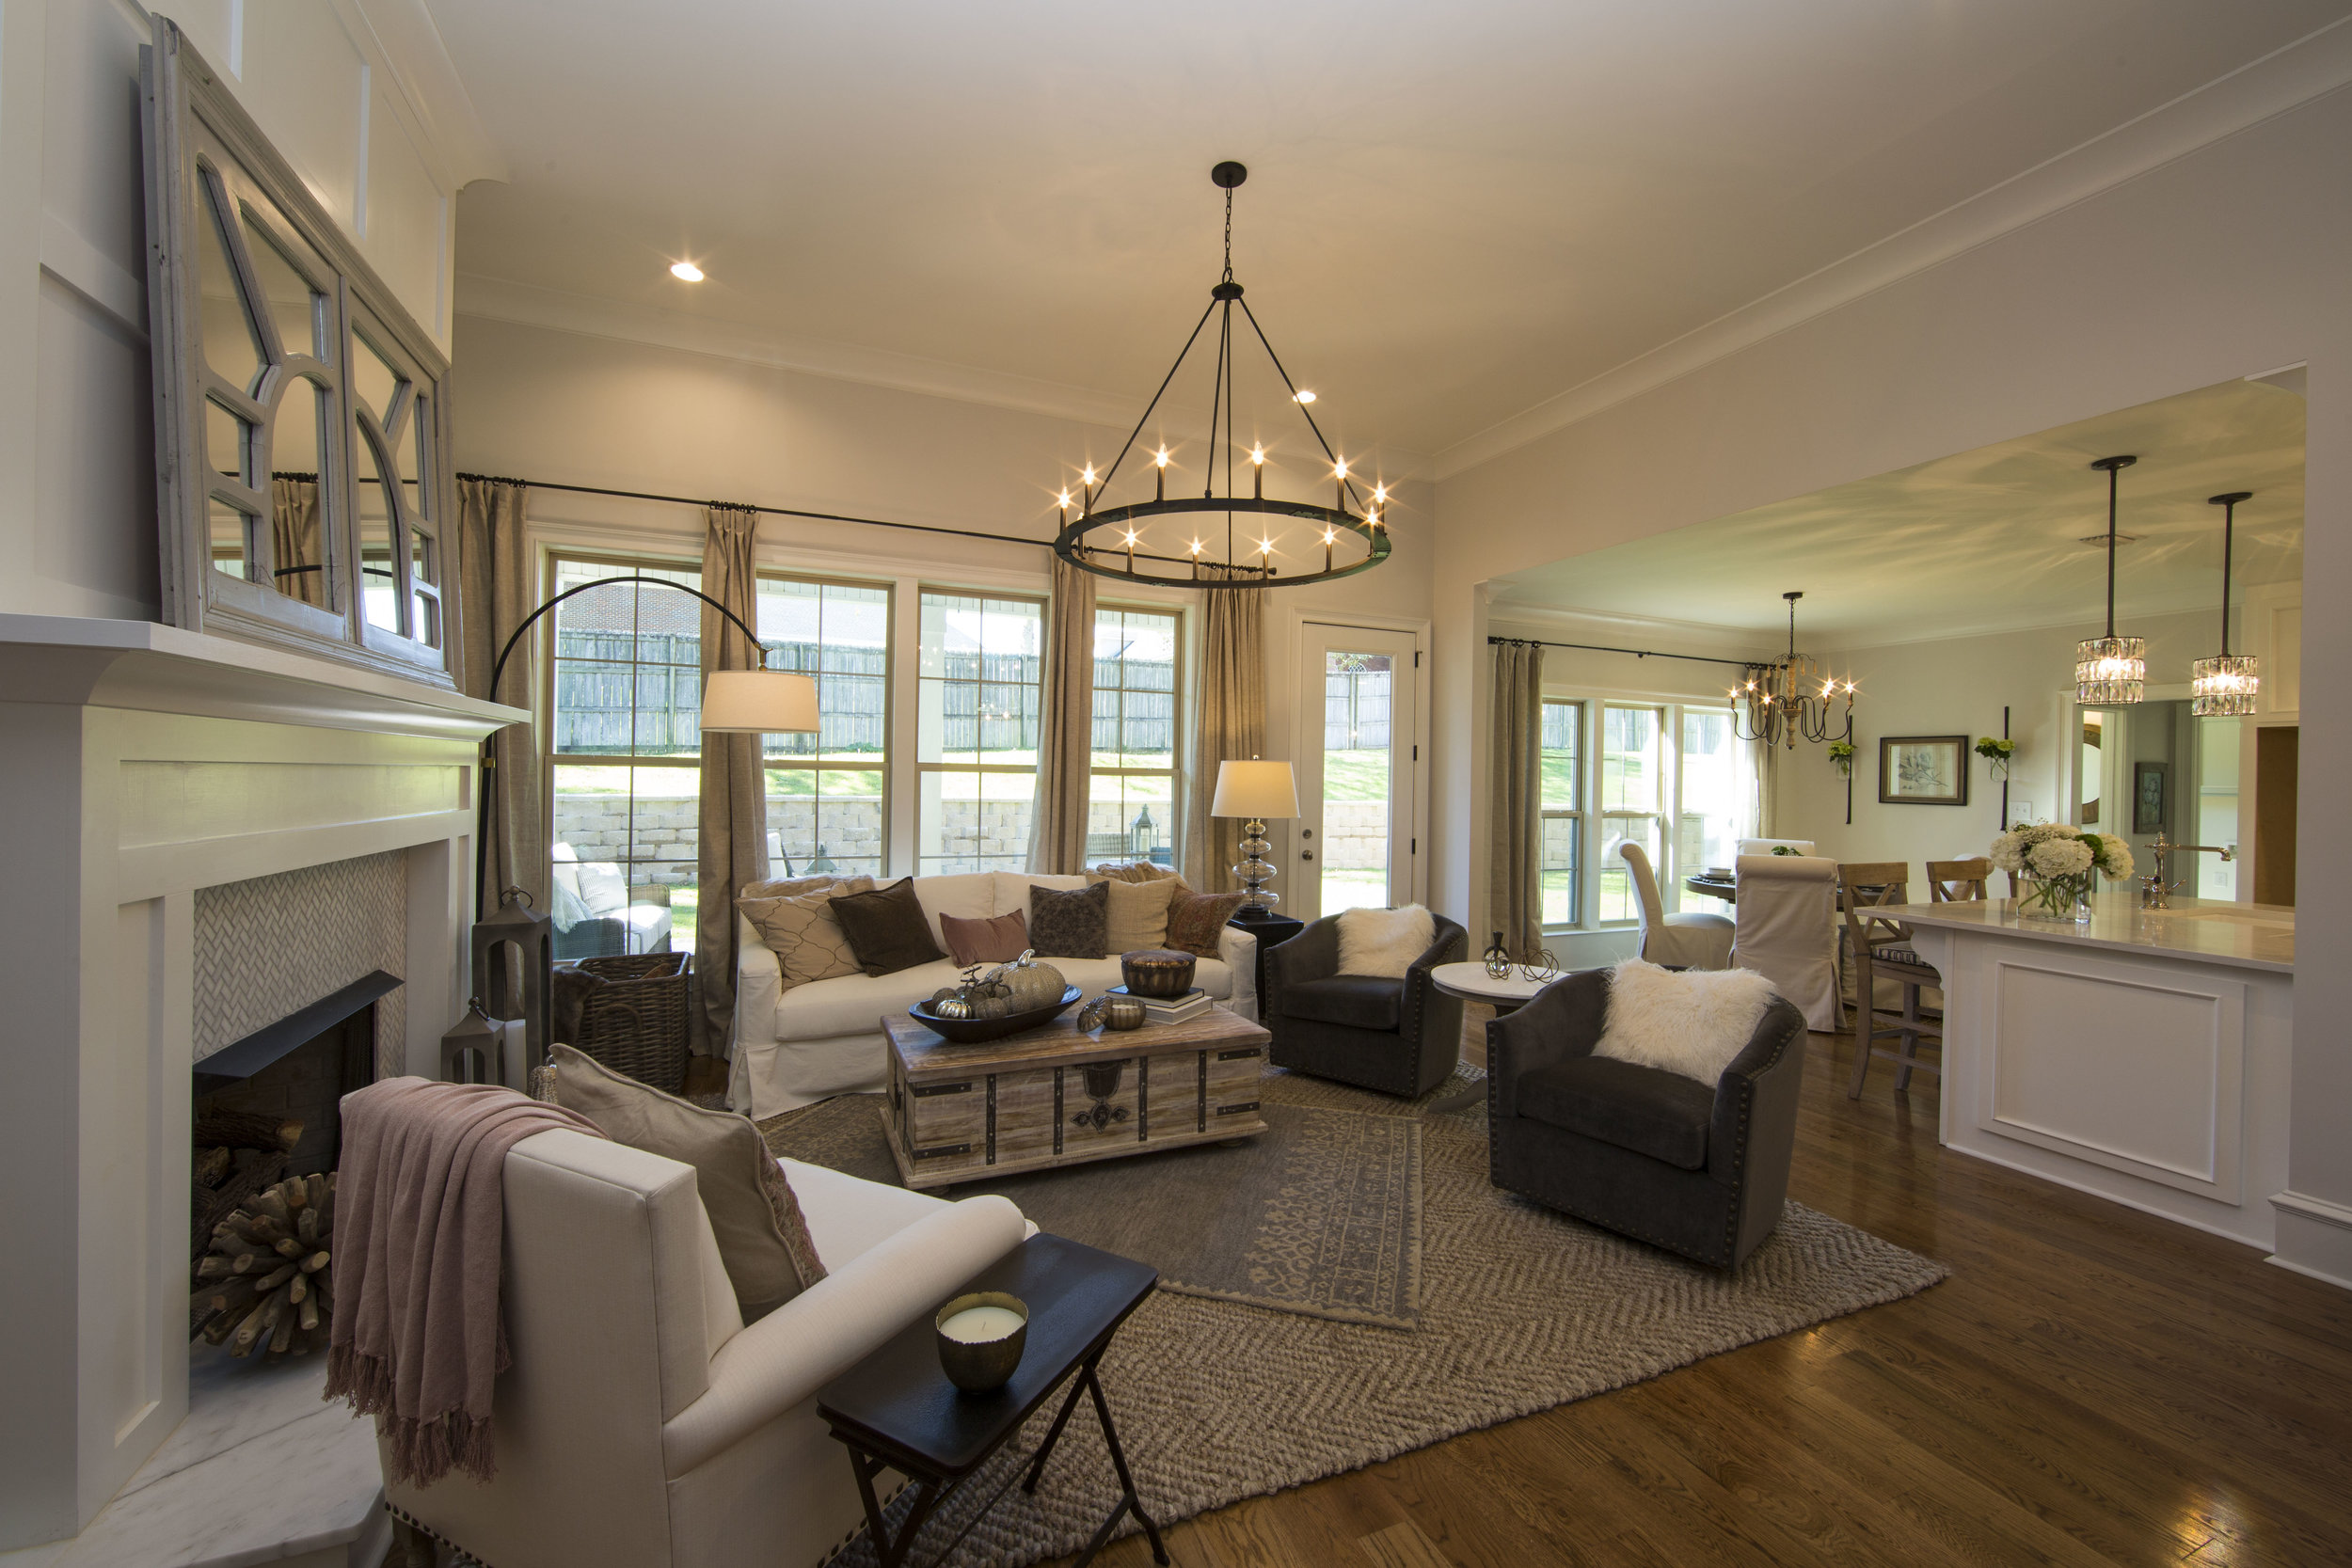 Wynnfield Court Parade of Homes 0r7a7027.jpg